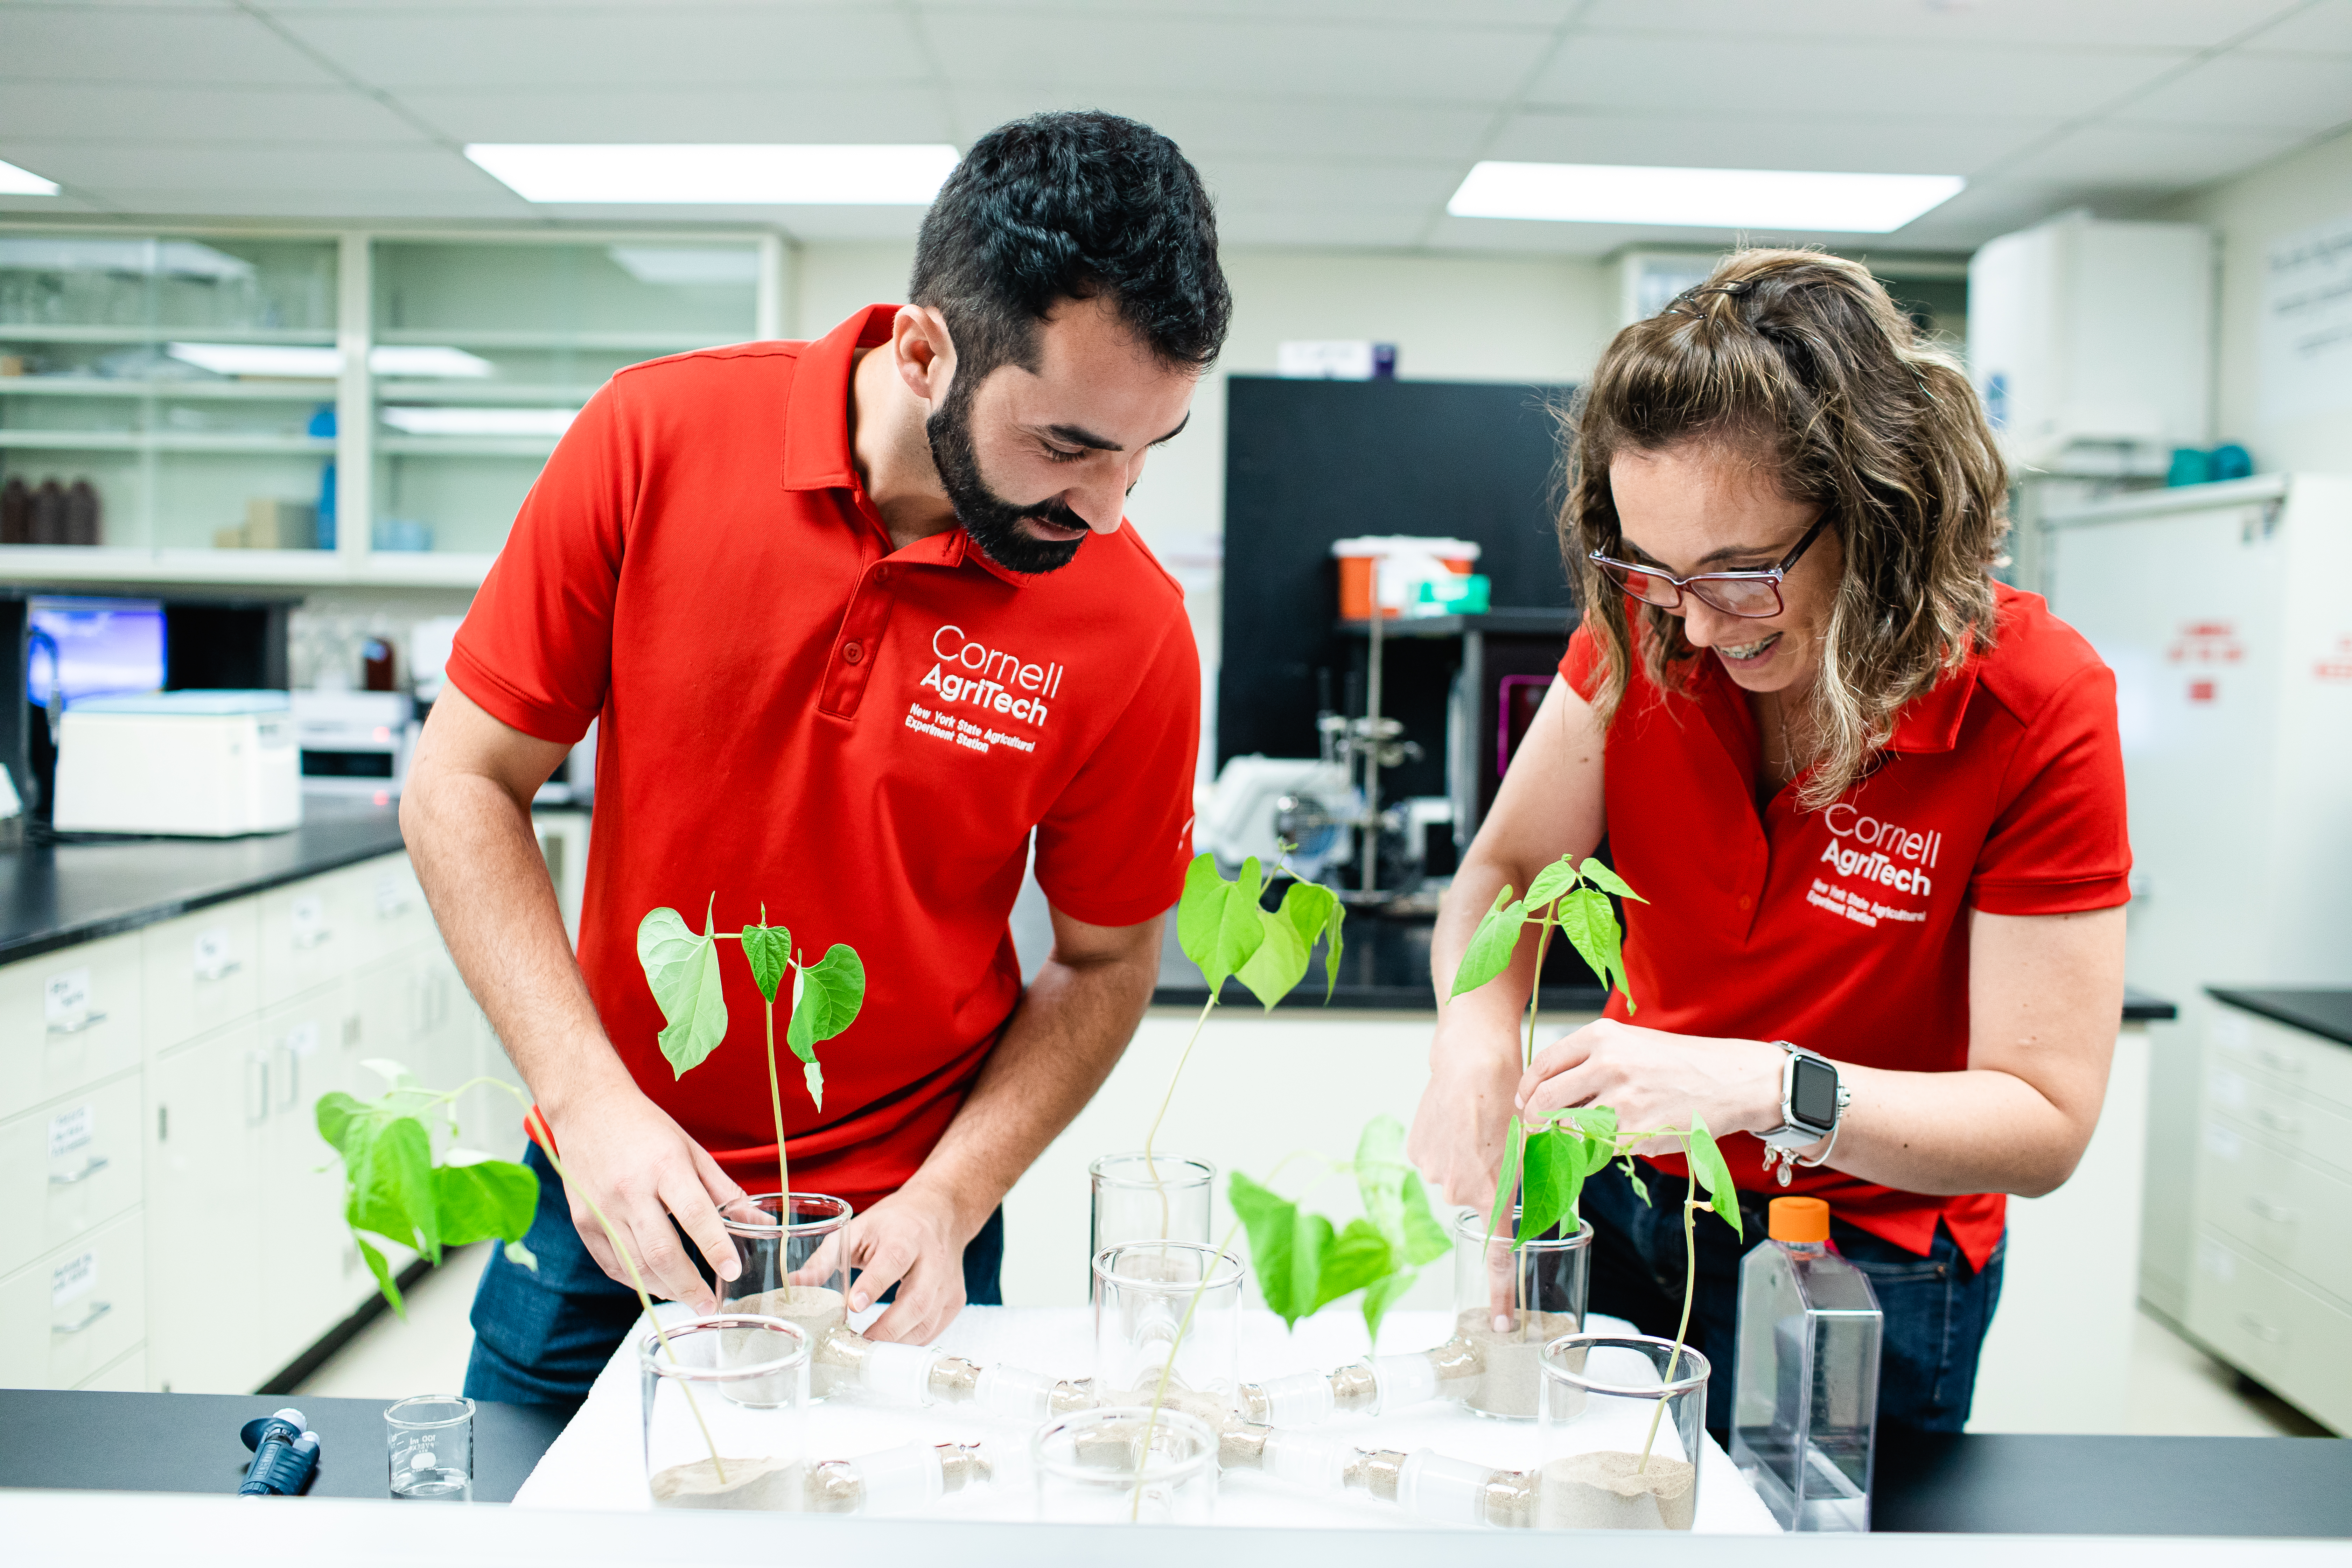 Two people inspecting plants in lab setting.